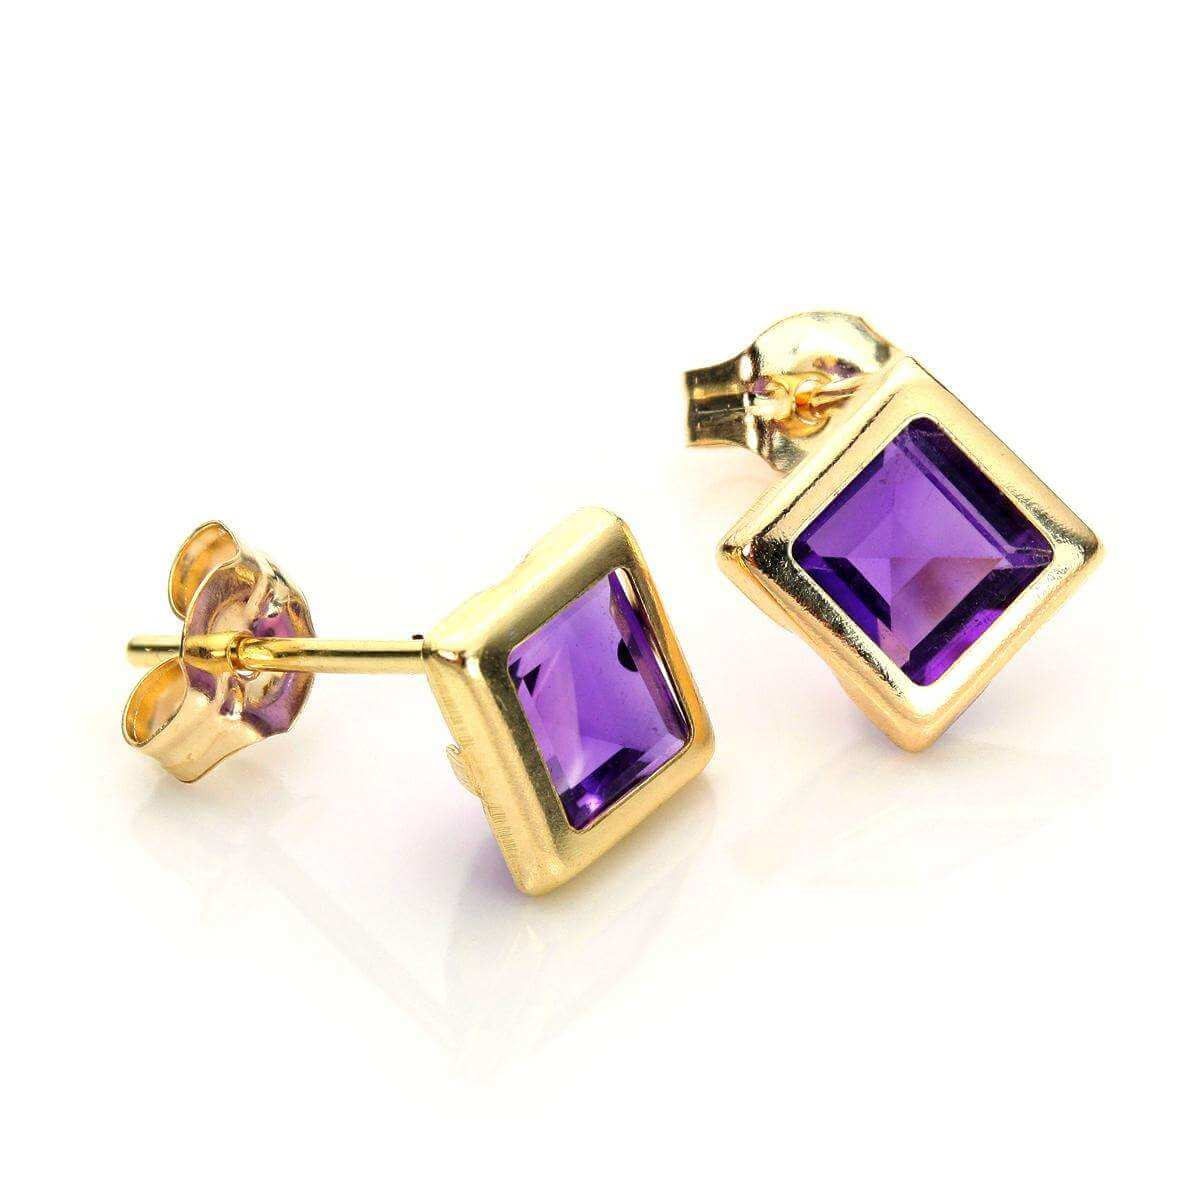 9ct Yellow Gold Amethyst 5mm Stud Earrings